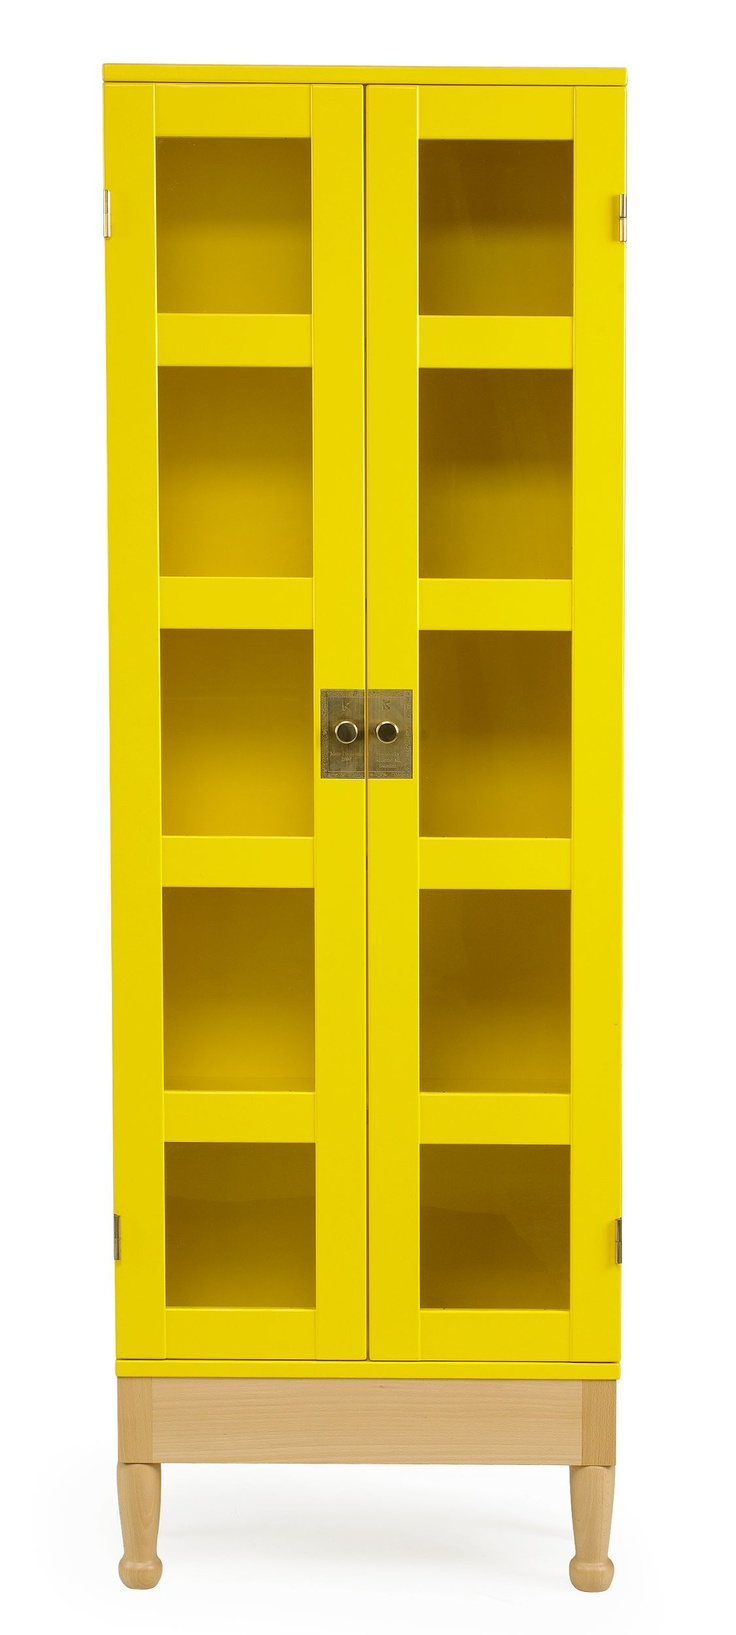 "Mats Theselius, ""National Geographic"", bookcases, Källemo, designed in 1990, yellow, opaque, glass doors, hardwood frame in beech, brass fittings, holds 25 issues of National Geographic,"